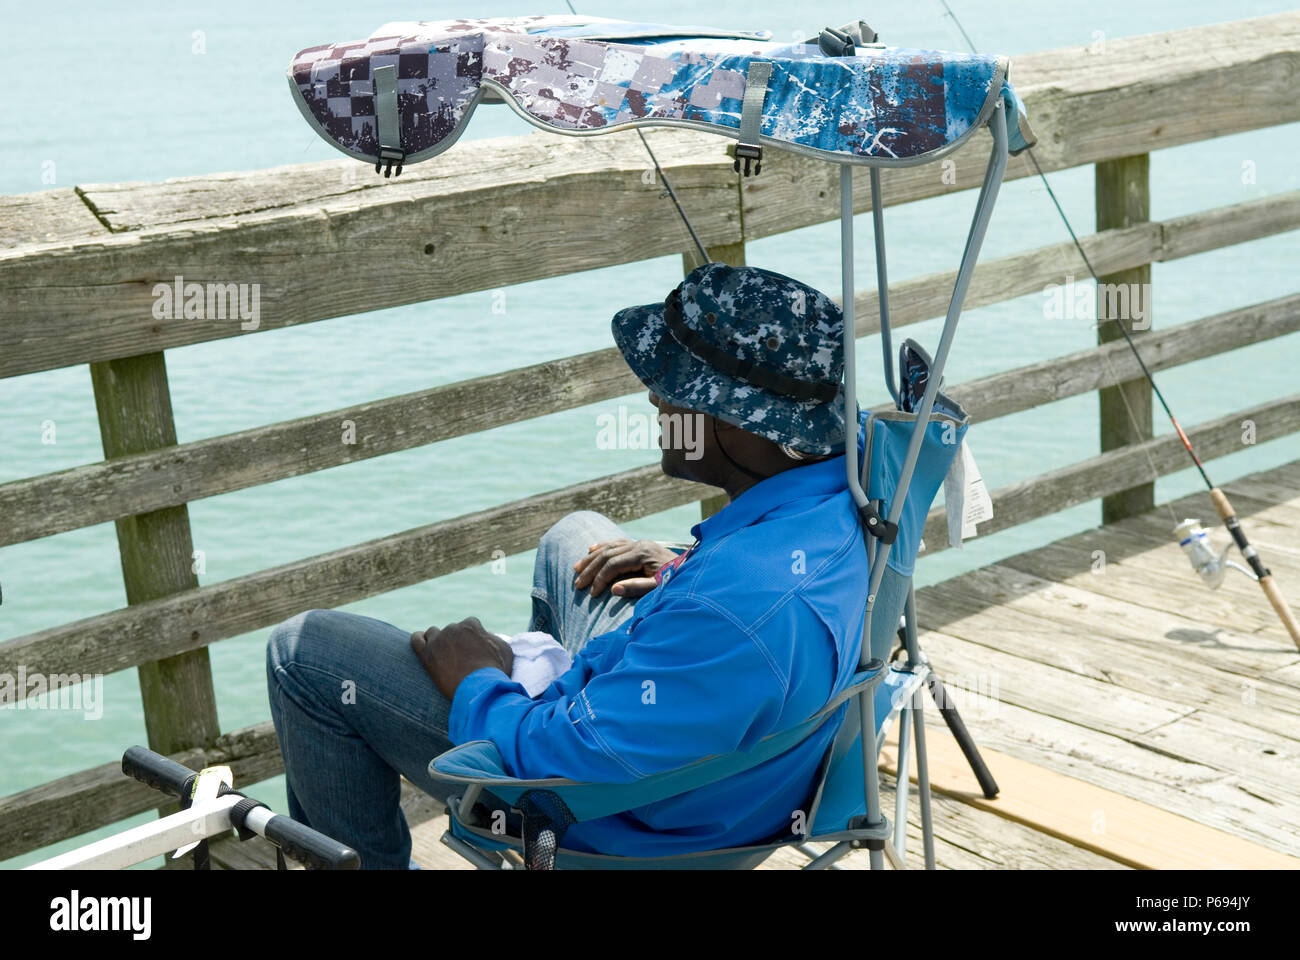 Man relaxes in chair on pier at Myrtle Beach State Park, SC, USA. Stock Photo